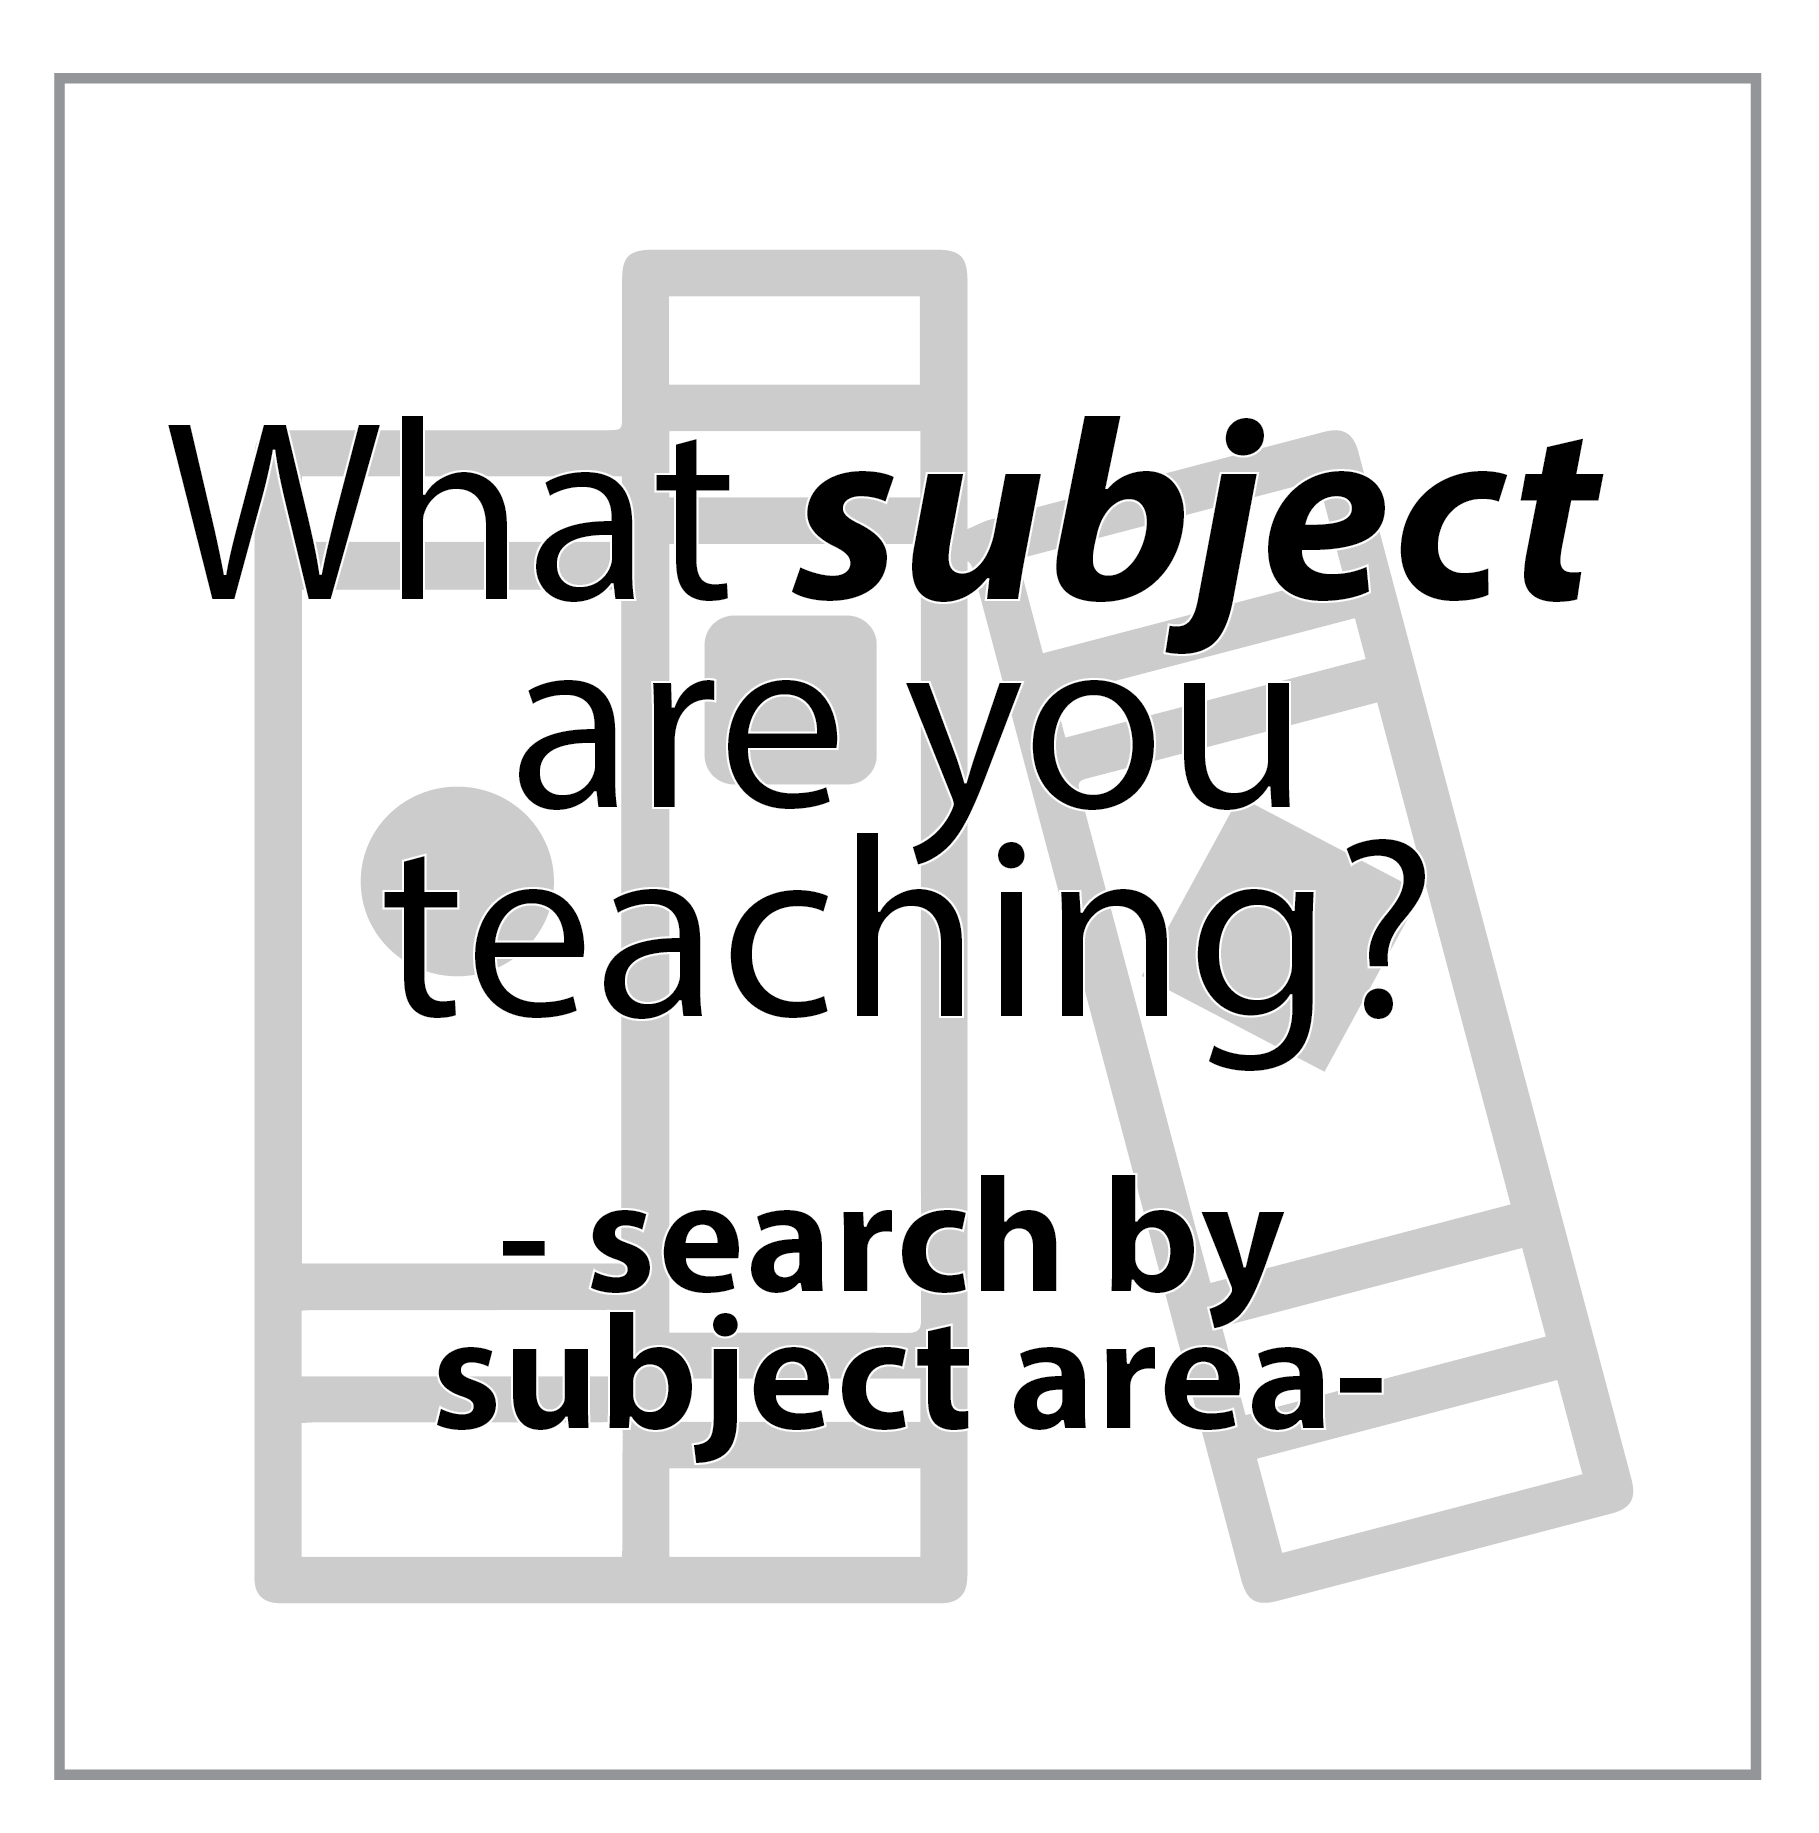 Search by subject area